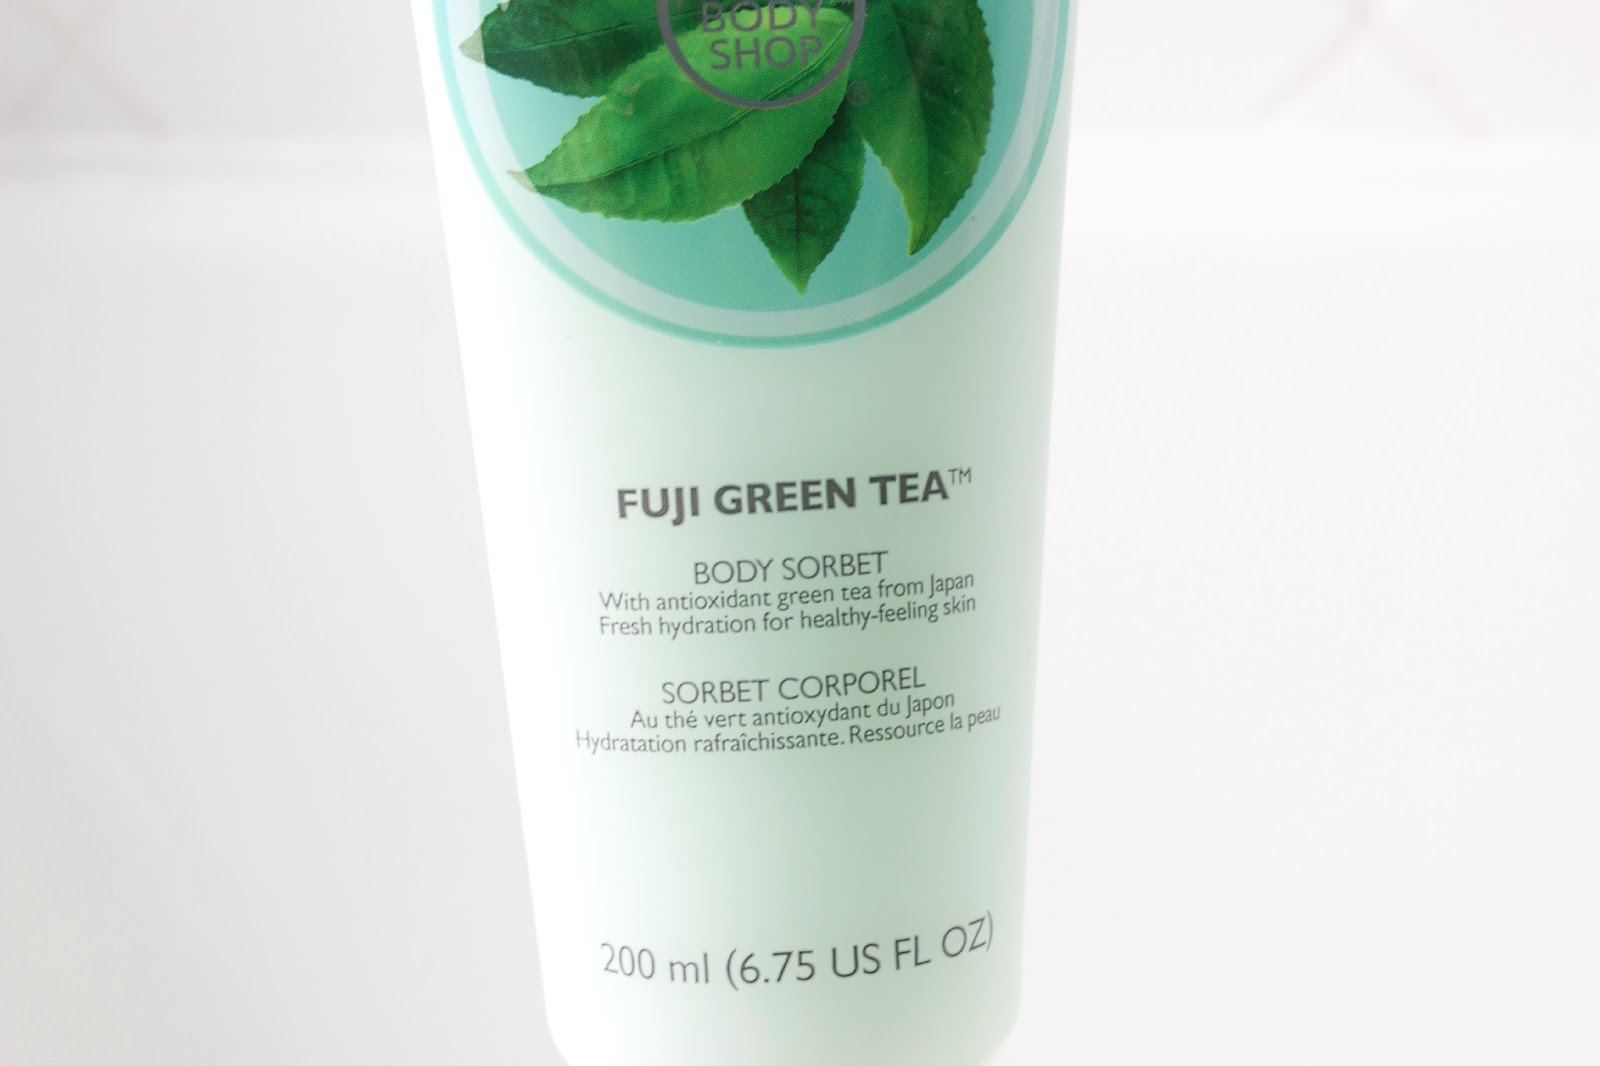 The Body Shop Fuji Green Tea Body Sorbet